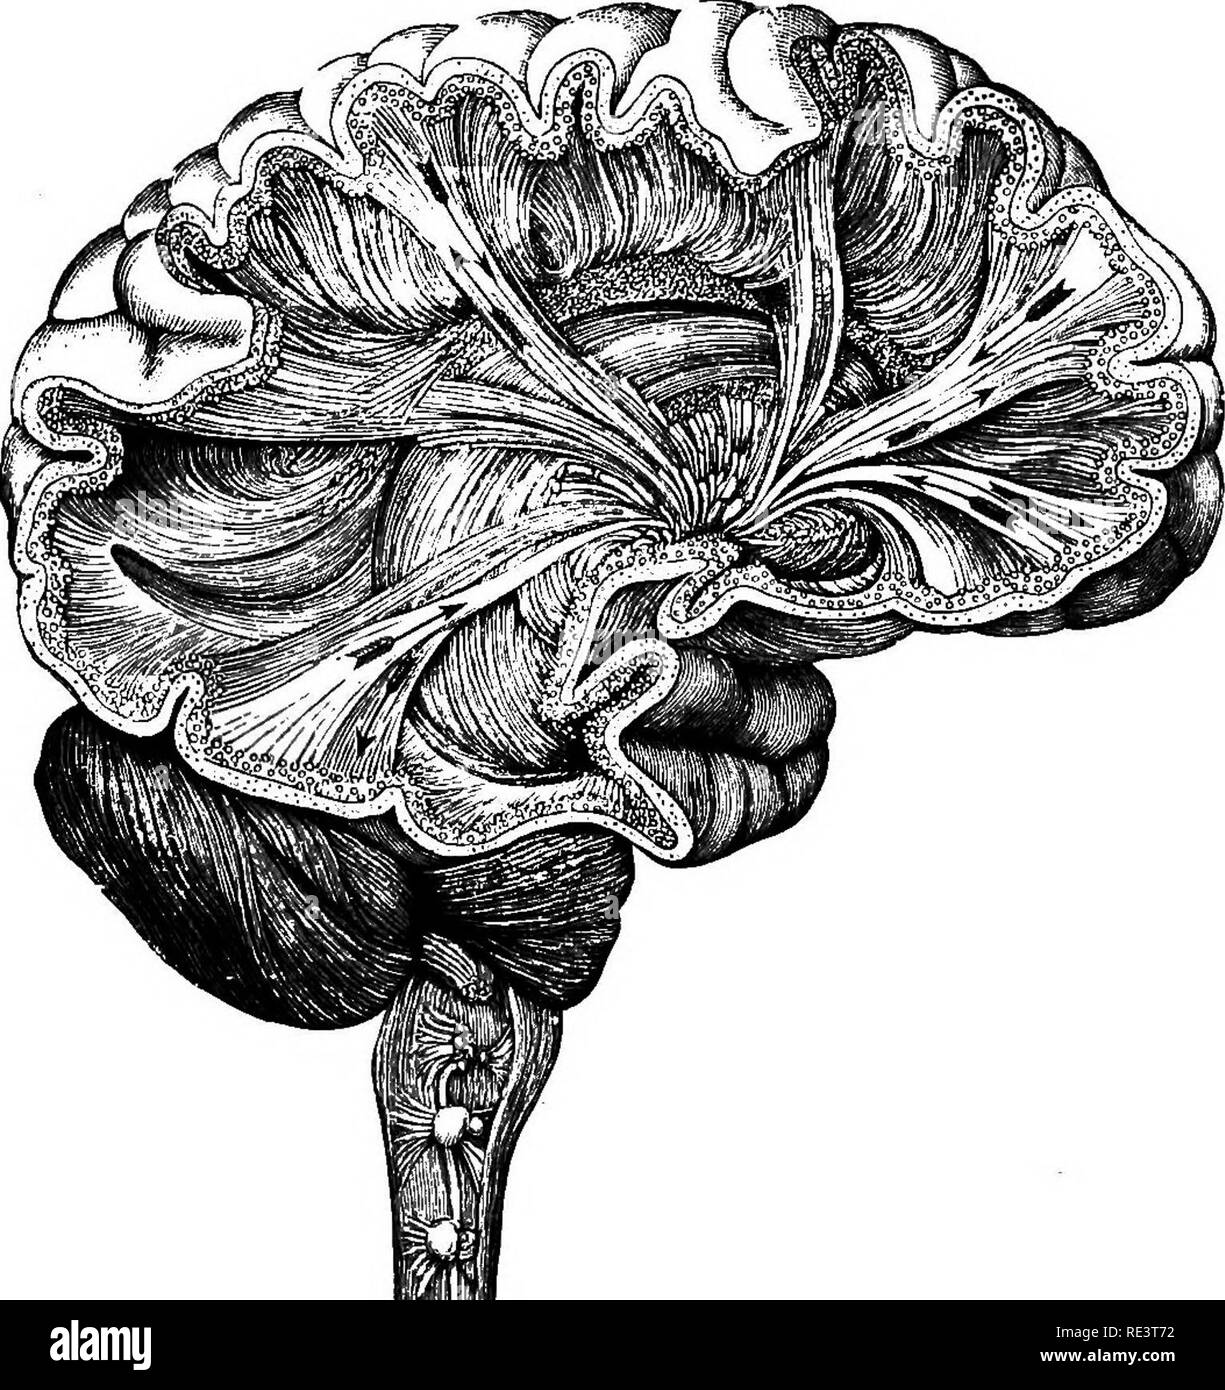 Different Parts Of The Brain Stock Photos & Different Parts